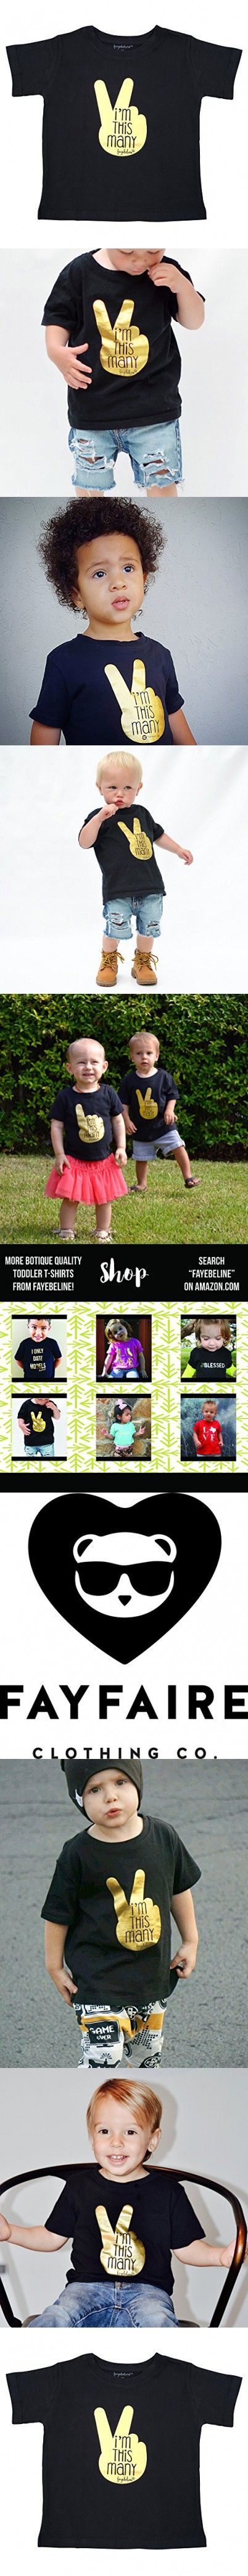 2nd Birthday Boy and Girl Outfit Shirt Fayfaire (formerly Fayebeline) Boutique Bday Toddler Tee I'm This Many Black Size 2T